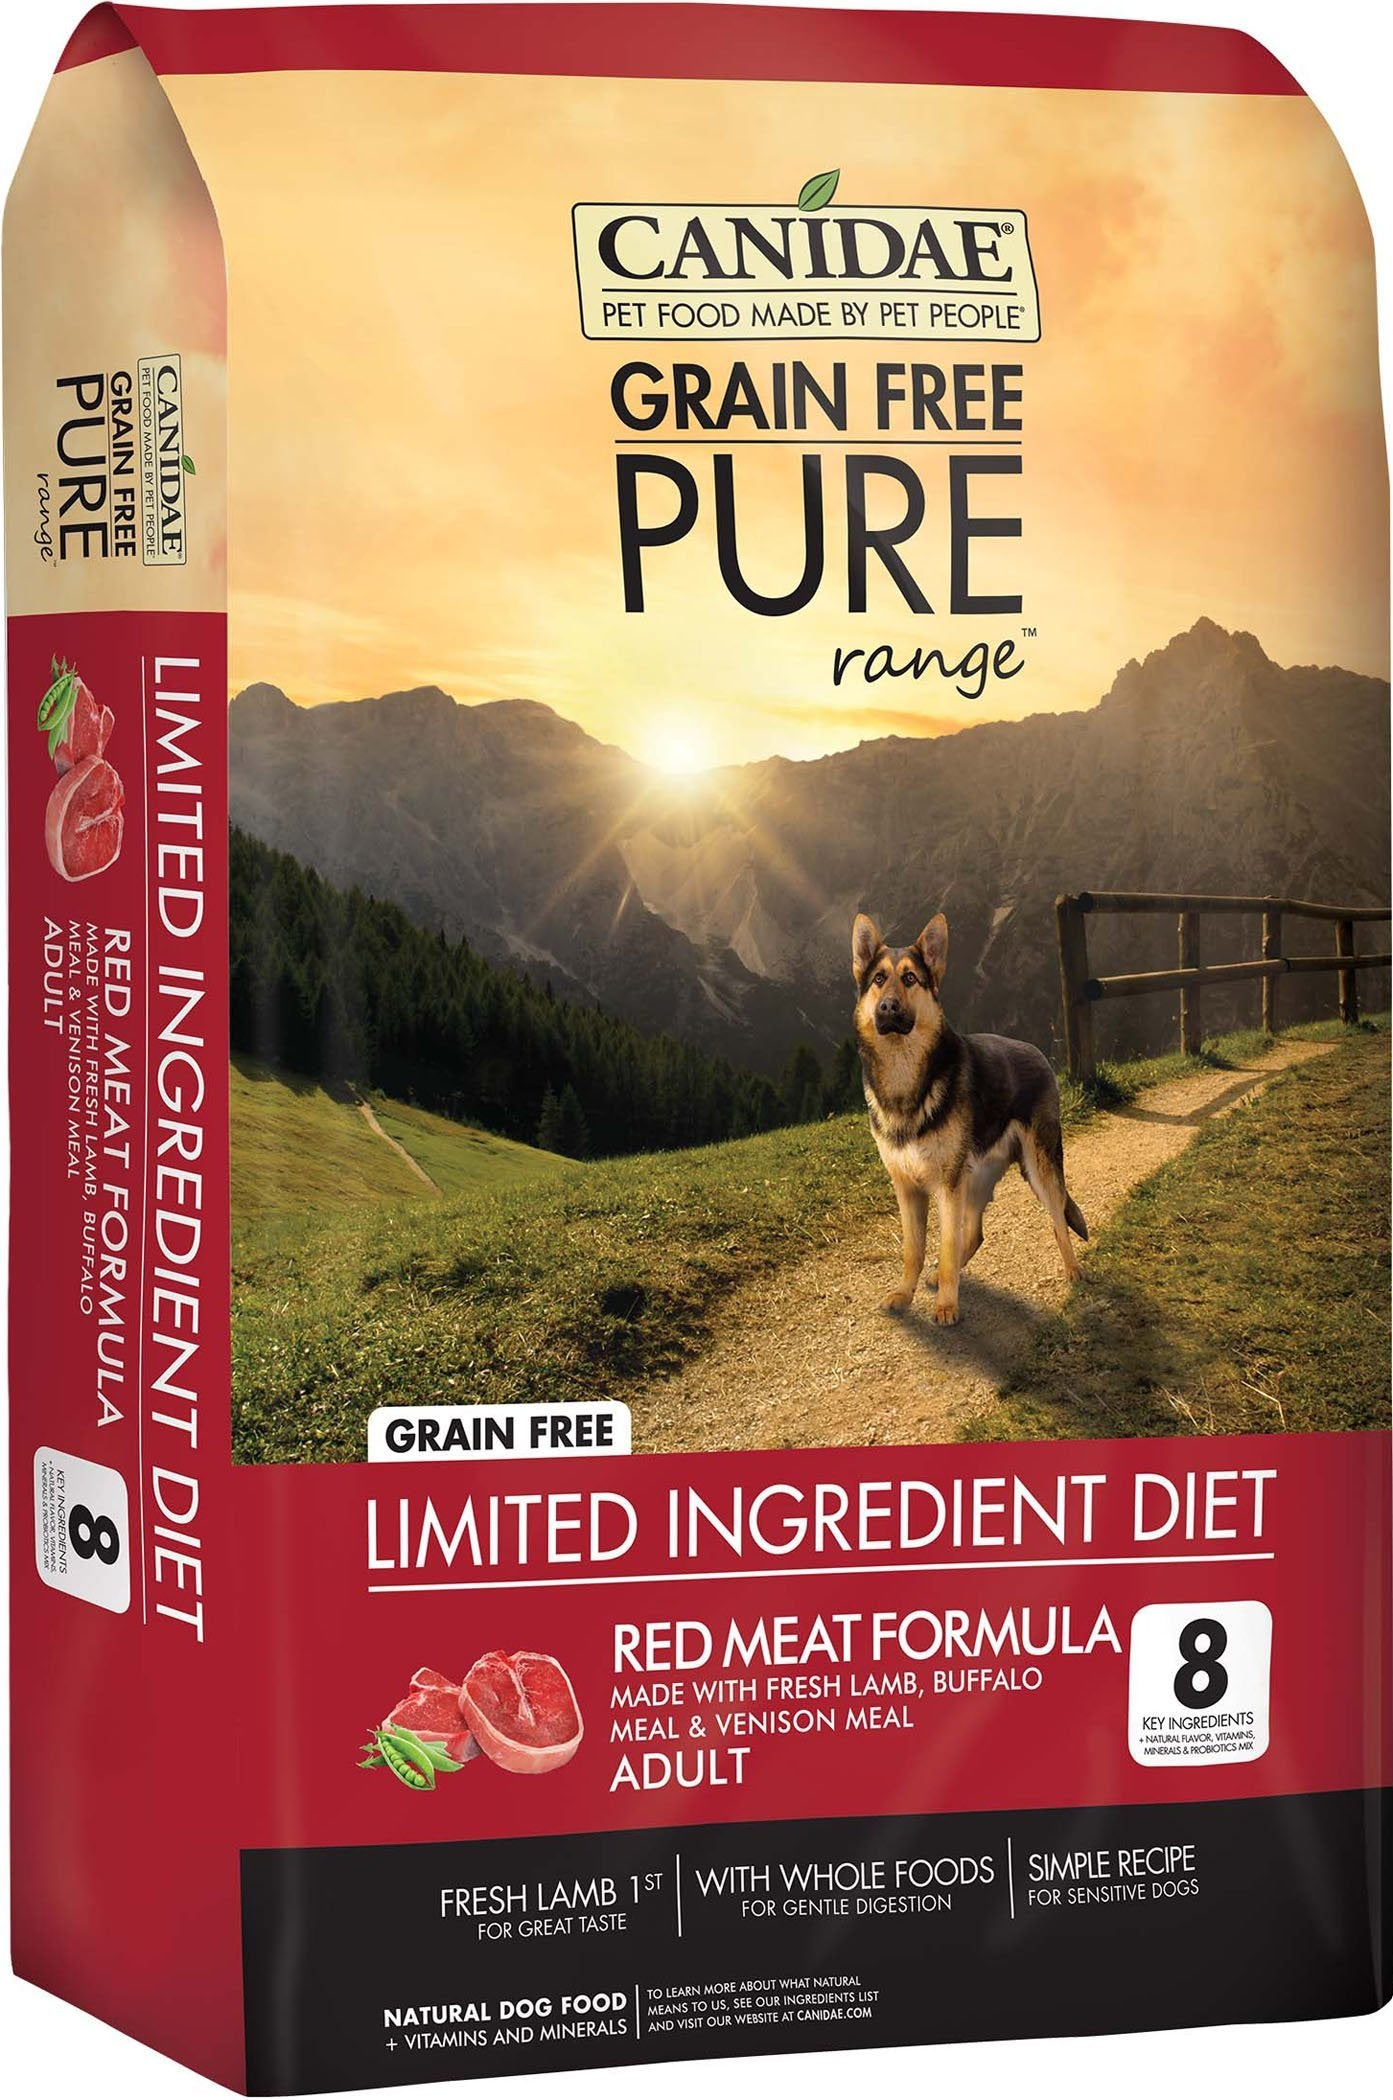 Dog Food Canidae Pure Range Red Meat Formula Dry Dog Food 640461018413 TP012163